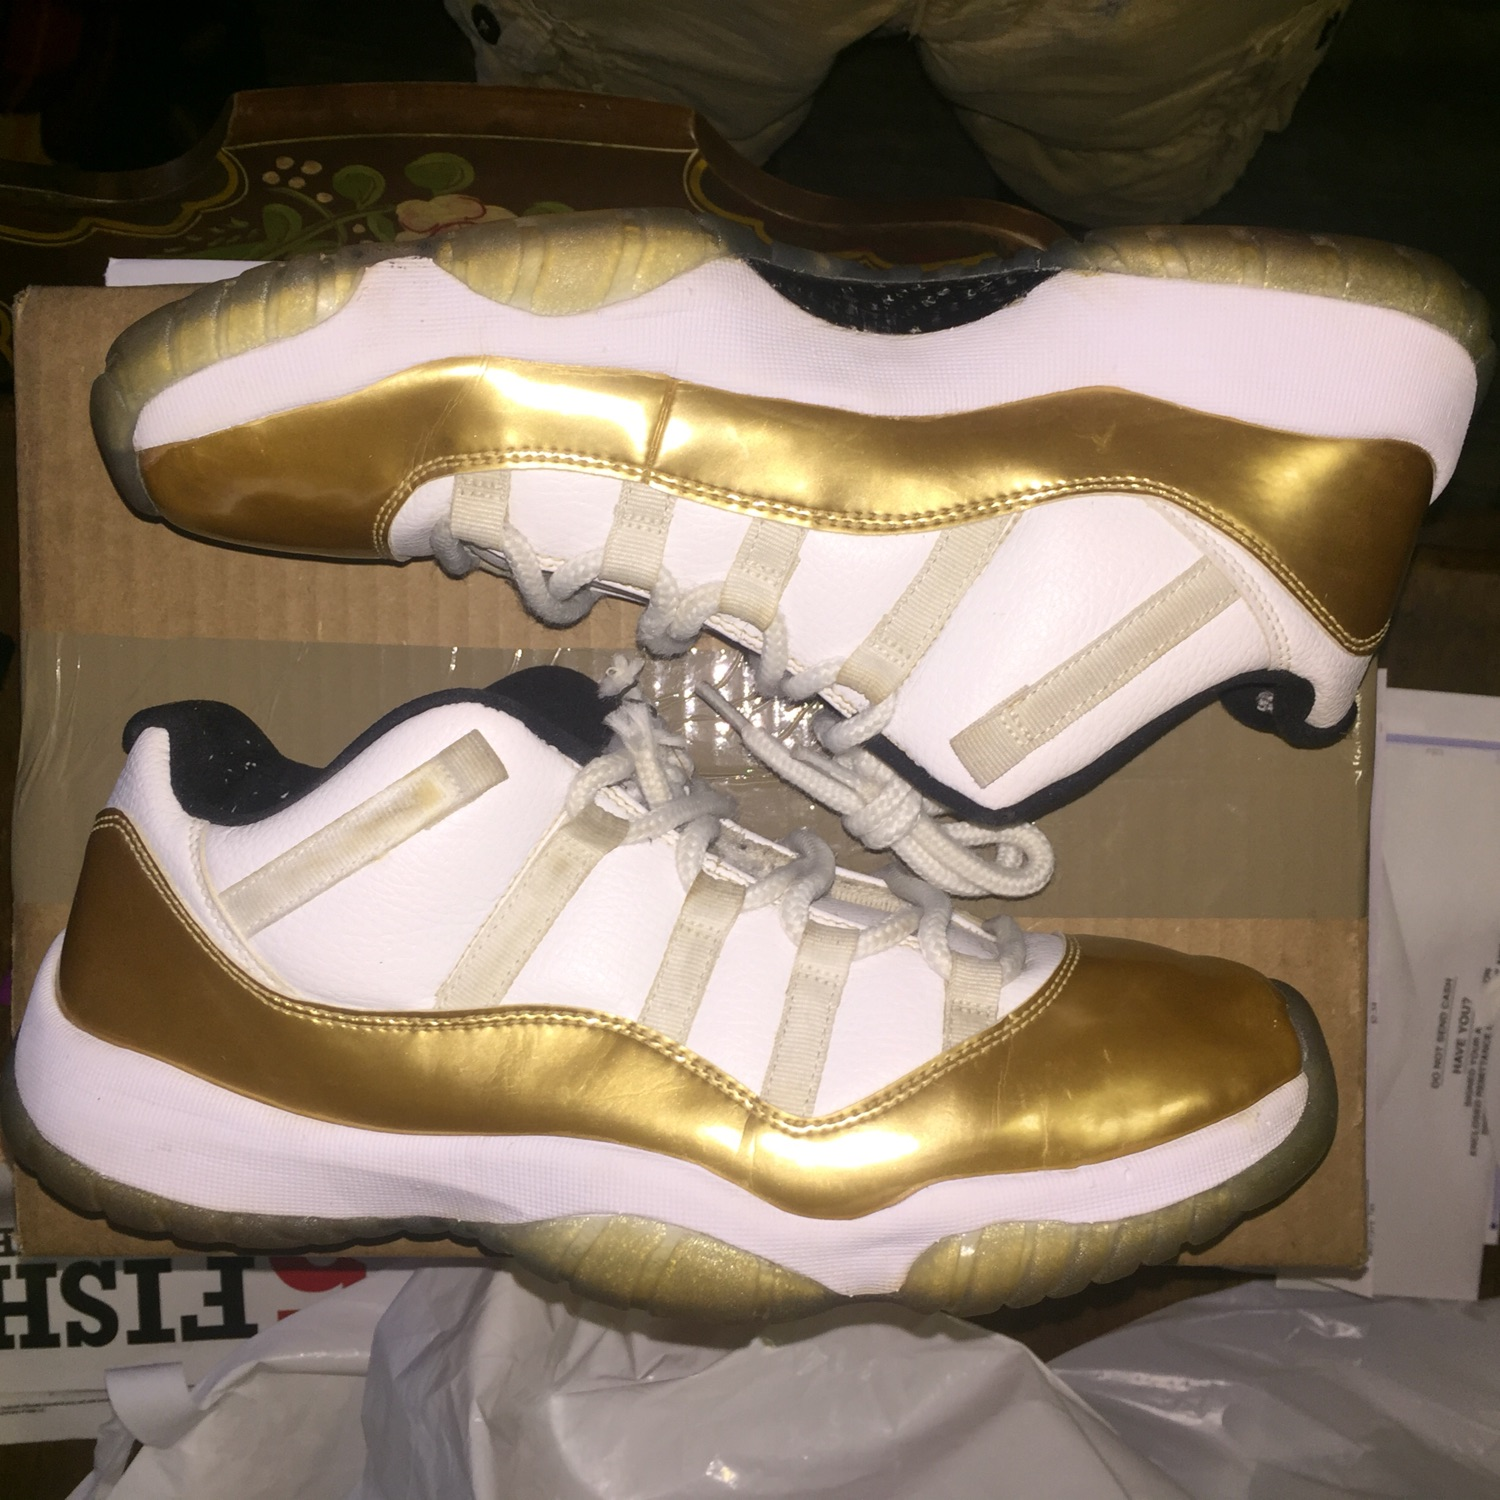 Jordan 11 Low Closing Ceremony Sz 11